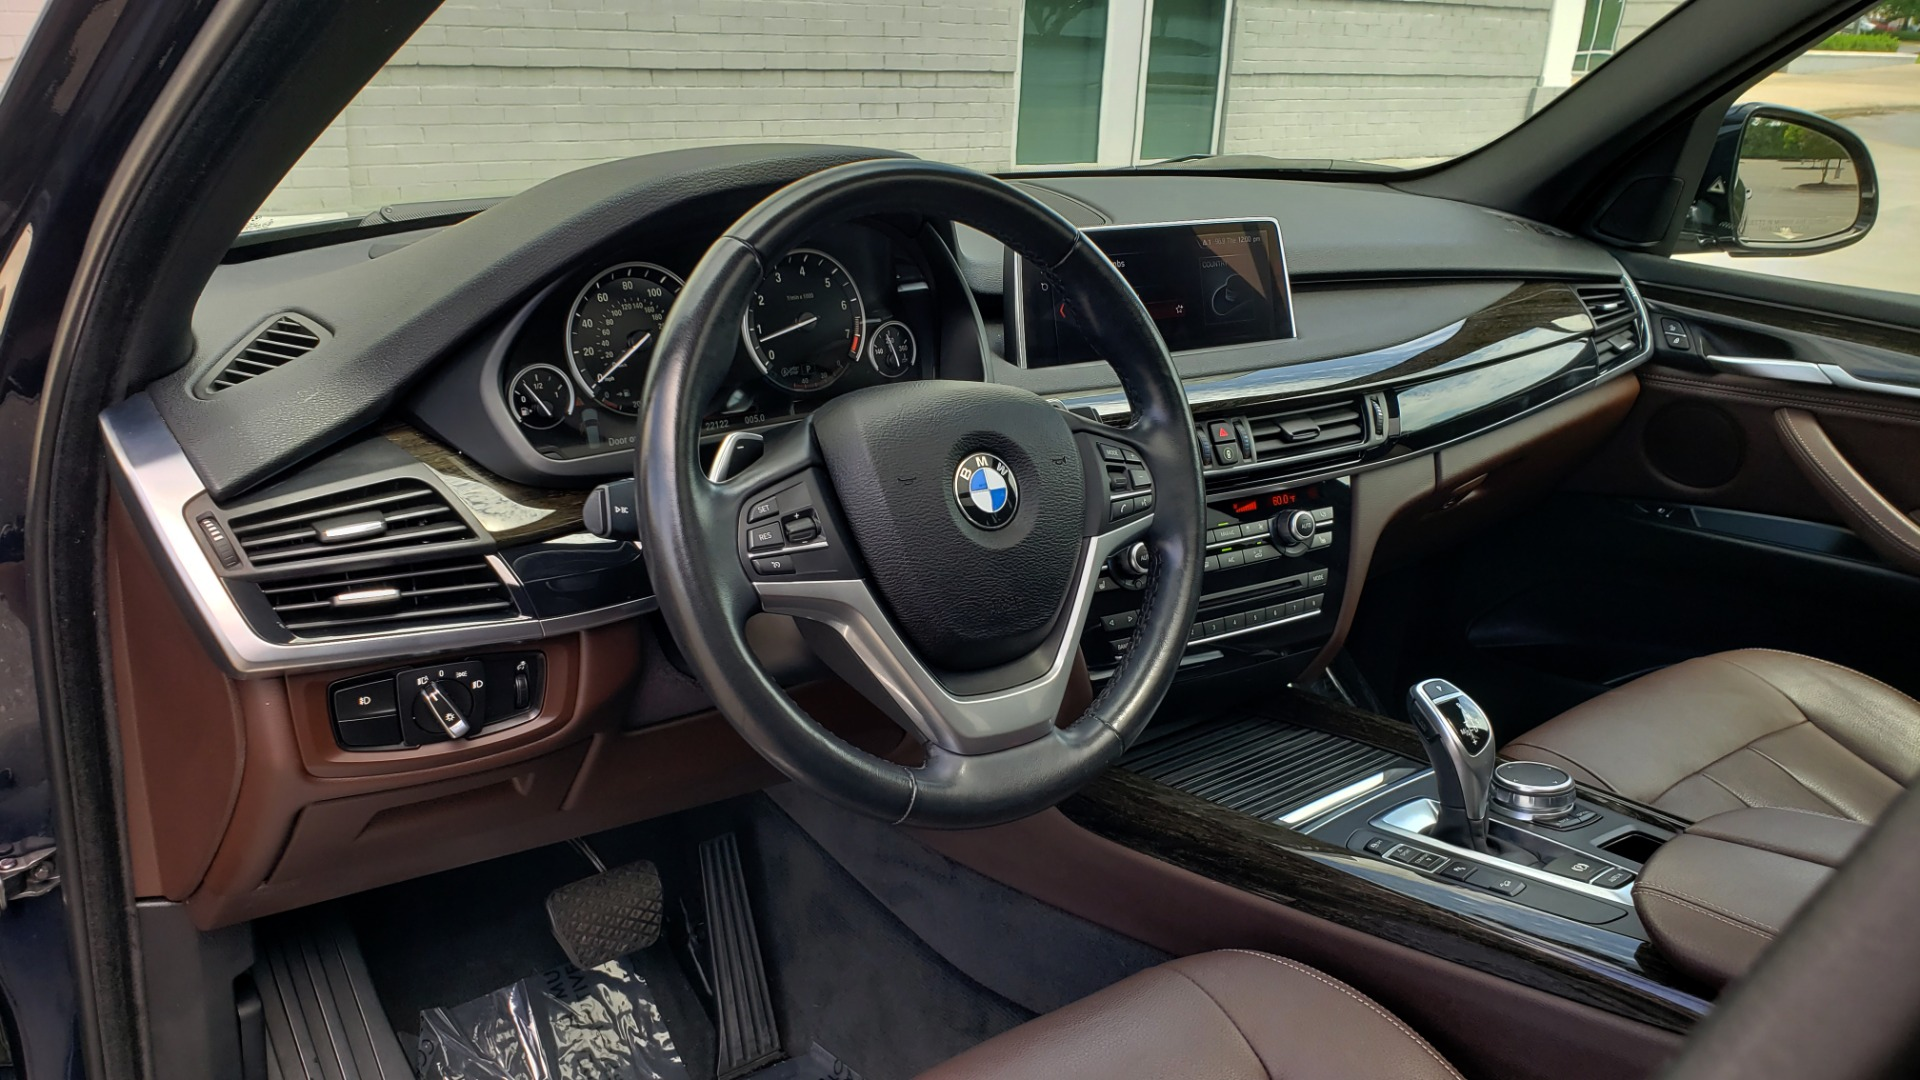 Used 2018 BMW X5 XDRIVE35I PREMIUM / LUXURY / DRVR ASST / HUD / LANE WARNING / REARVIEW for sale $43,695 at Formula Imports in Charlotte NC 28227 42